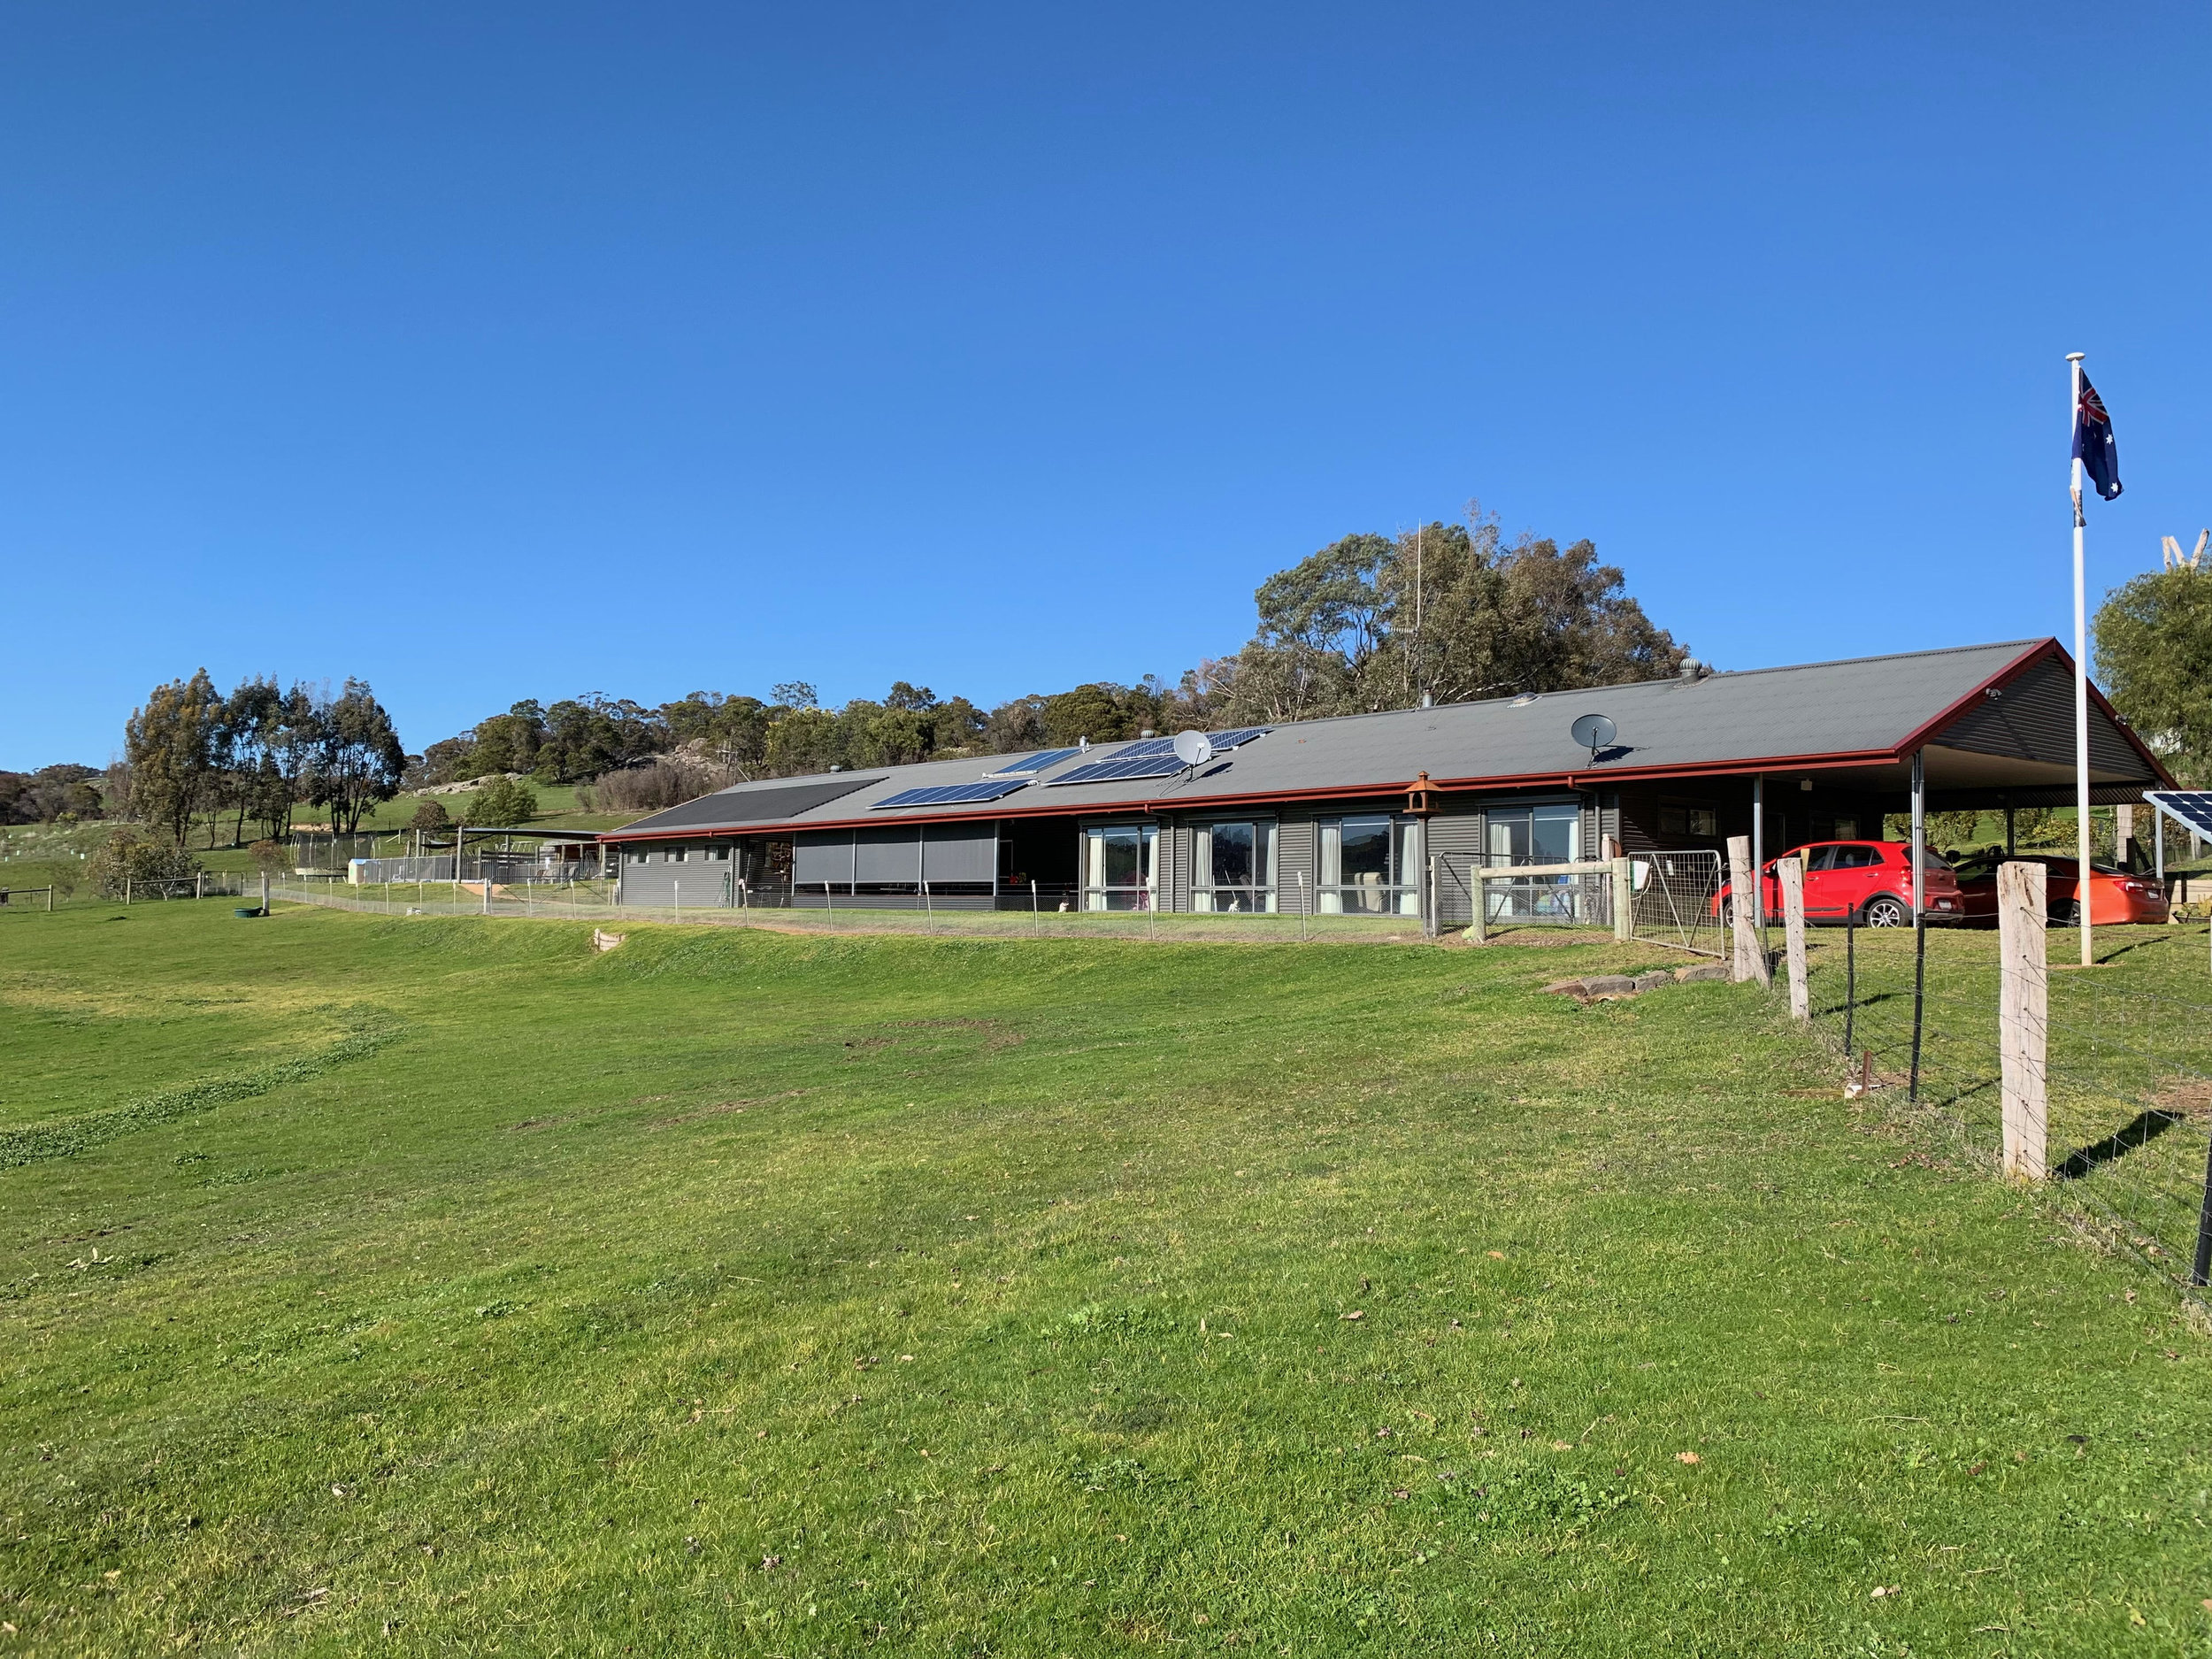 Camp Ruffy: remote but close, off-grid & sleeps 21 - Christine & Roger will welcome your up to 21 person group to an incredibly different experience.